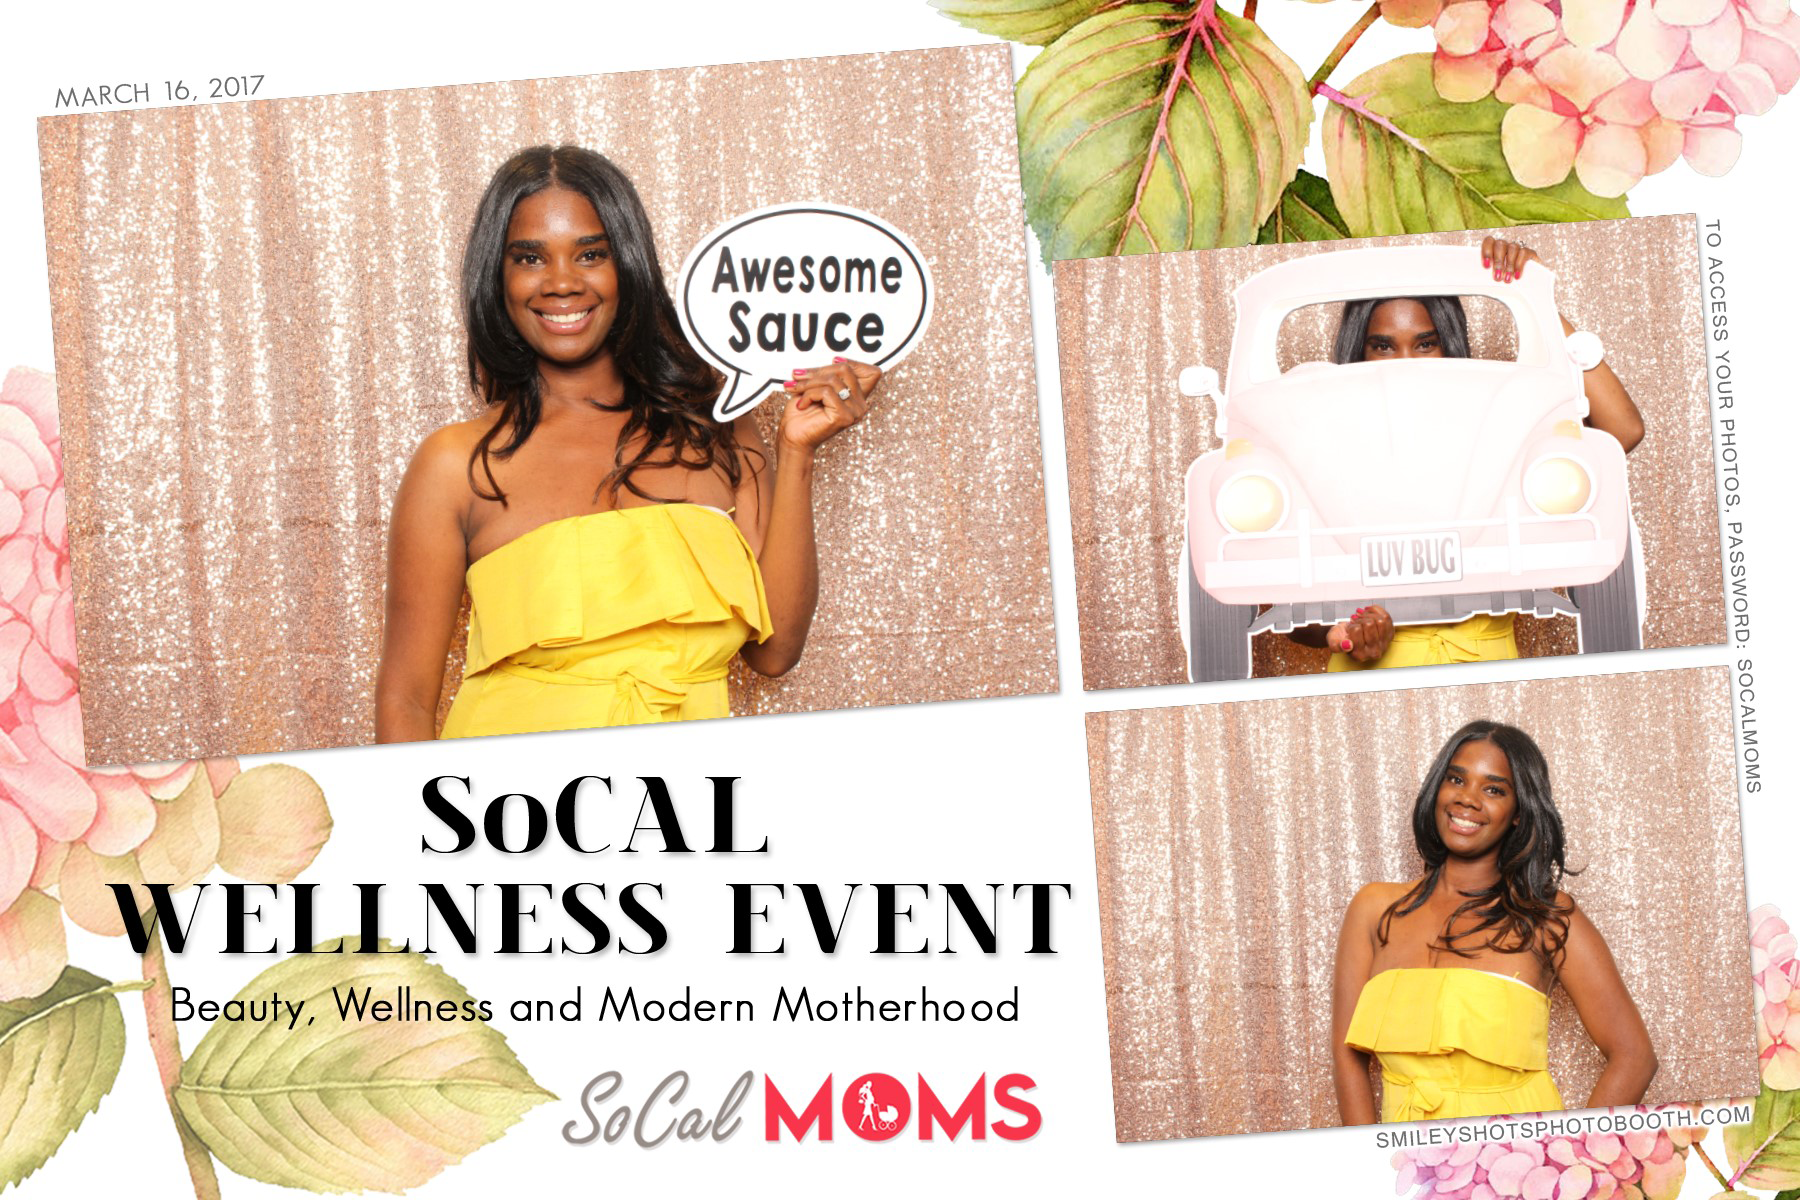 Socal Wellness Event Socal Moms Smiley Shots Photo Booth Photobooth (44).png